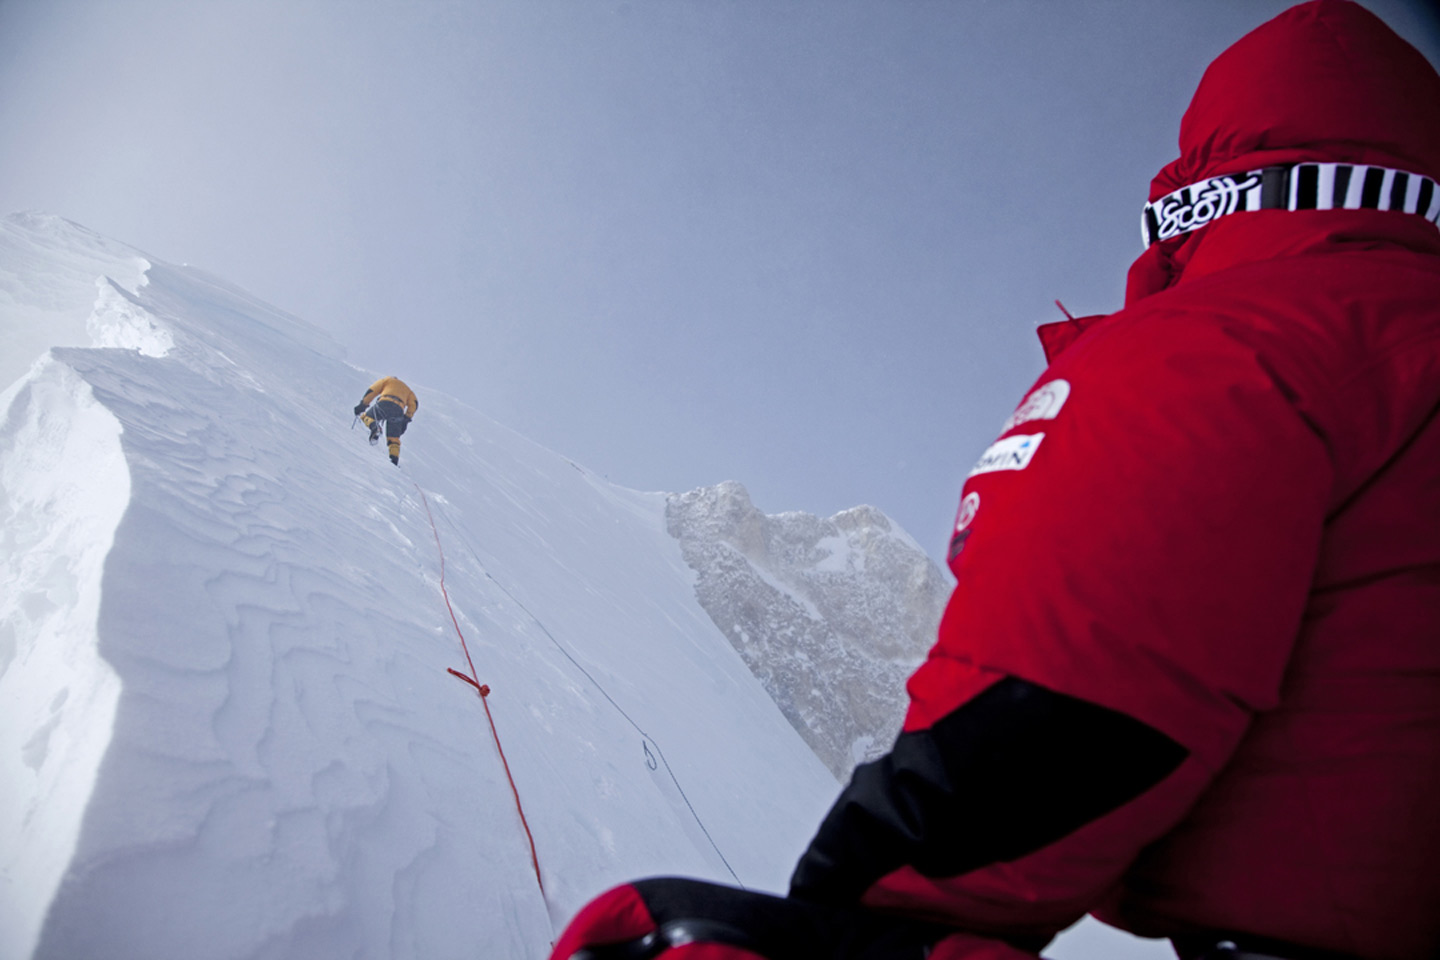 Heading to the summit of Gasherbrum II in winter, 170 kb